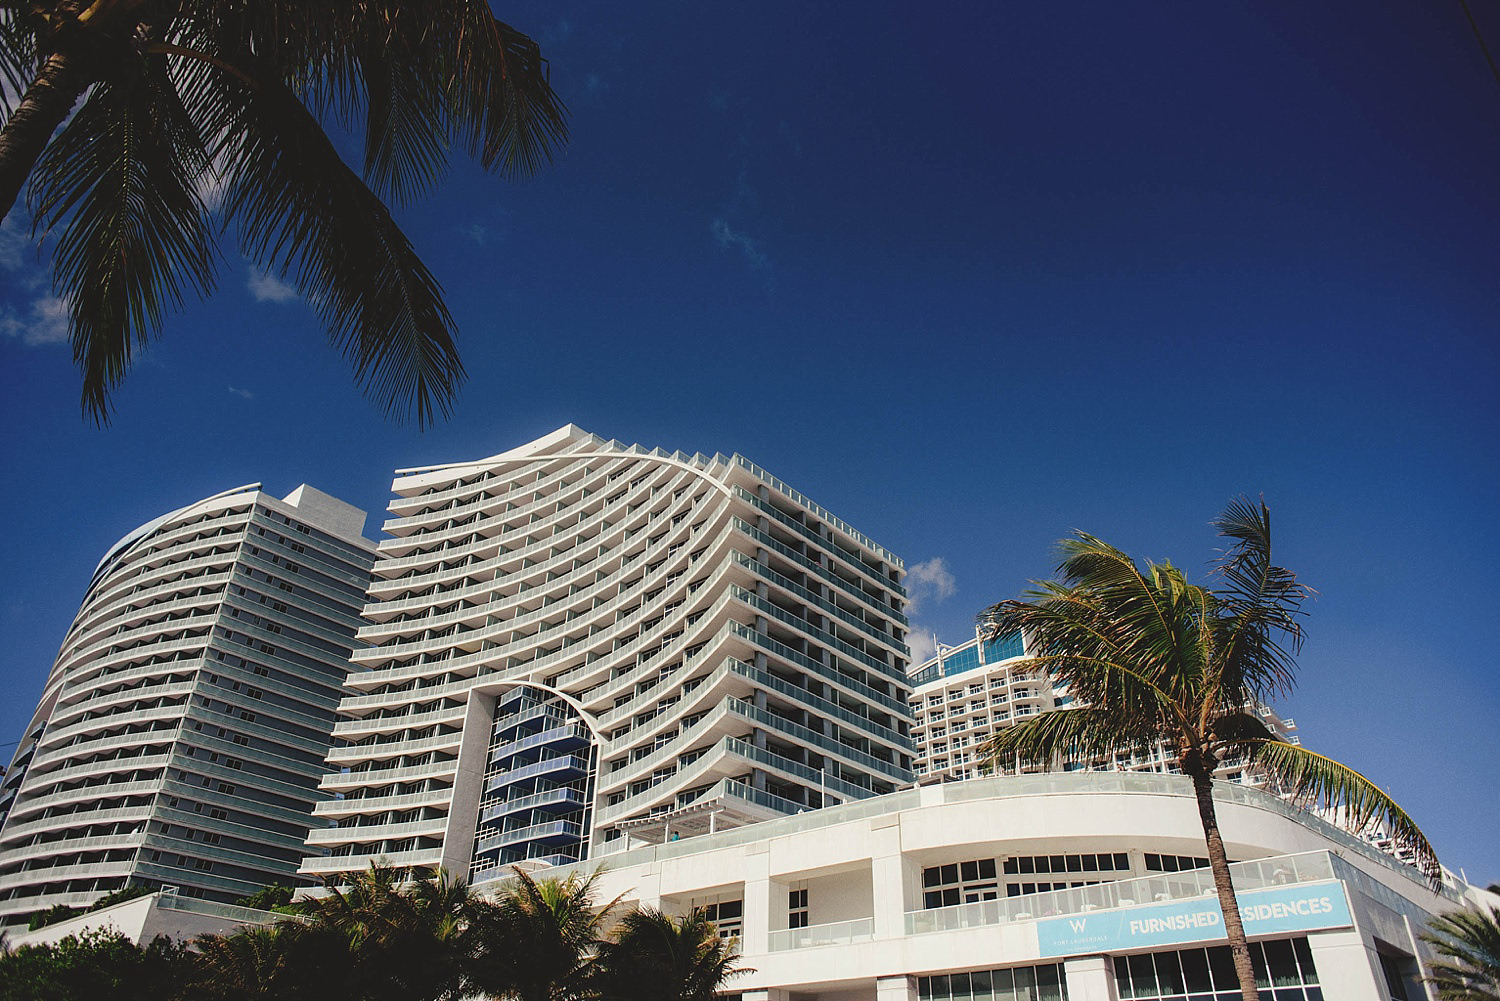 romantic-w-fort-lauderdale-wedding: front of building